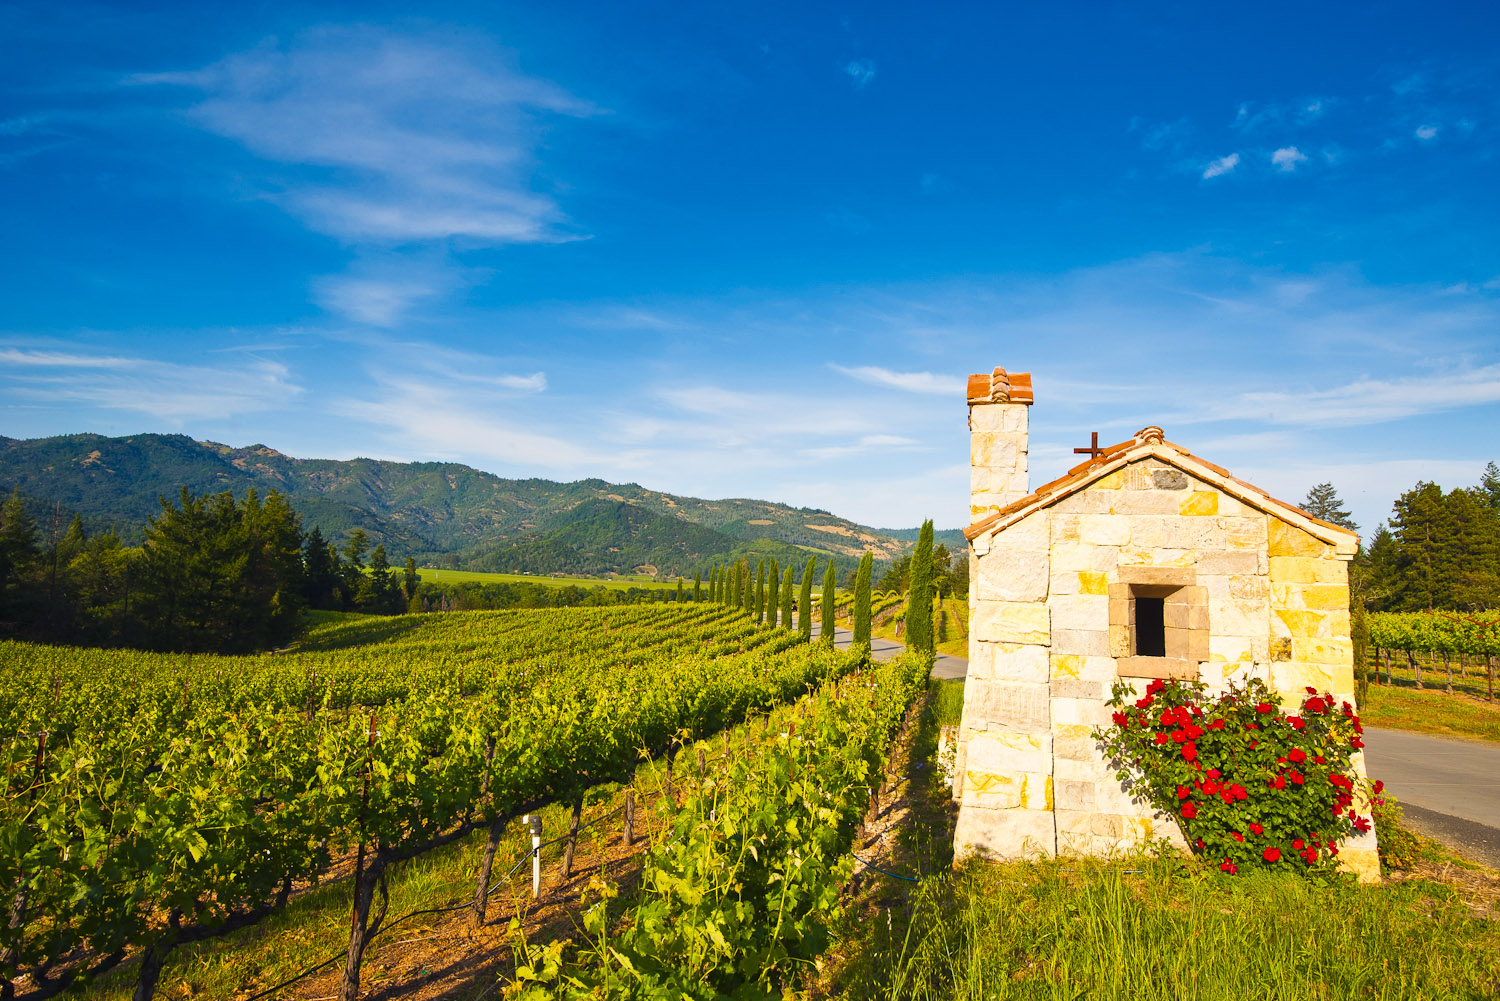 Welcome to California's wine country, Napa Valley.